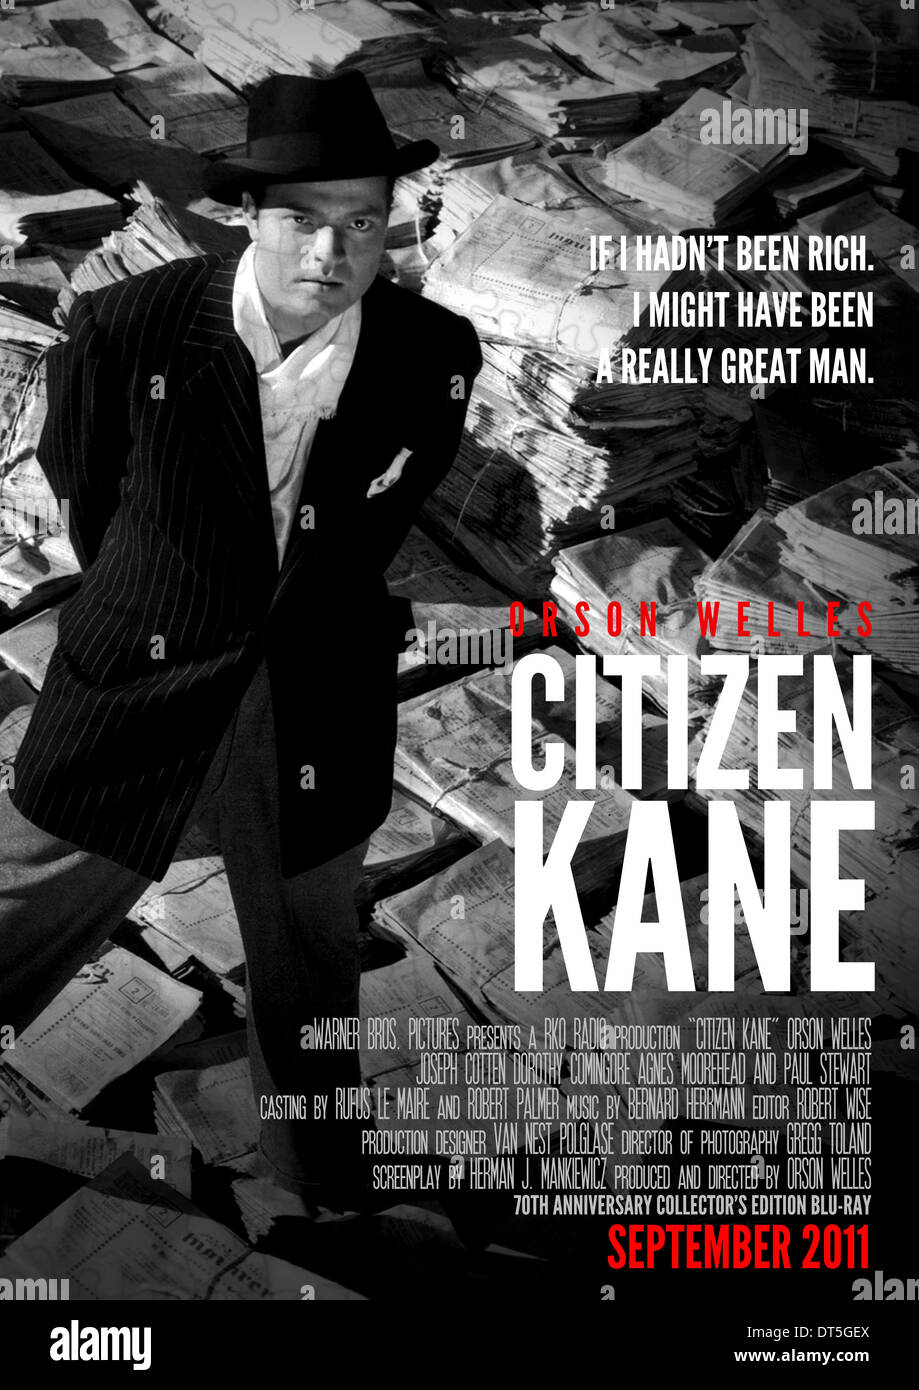 a review of the movie citizen kane by orson welles When you think about orson welles (and most of us film buffs do regularly think  about  collapsing in on itself after the early genius of citizen kane  instead,  review the roles that he played in films directed by those who did.